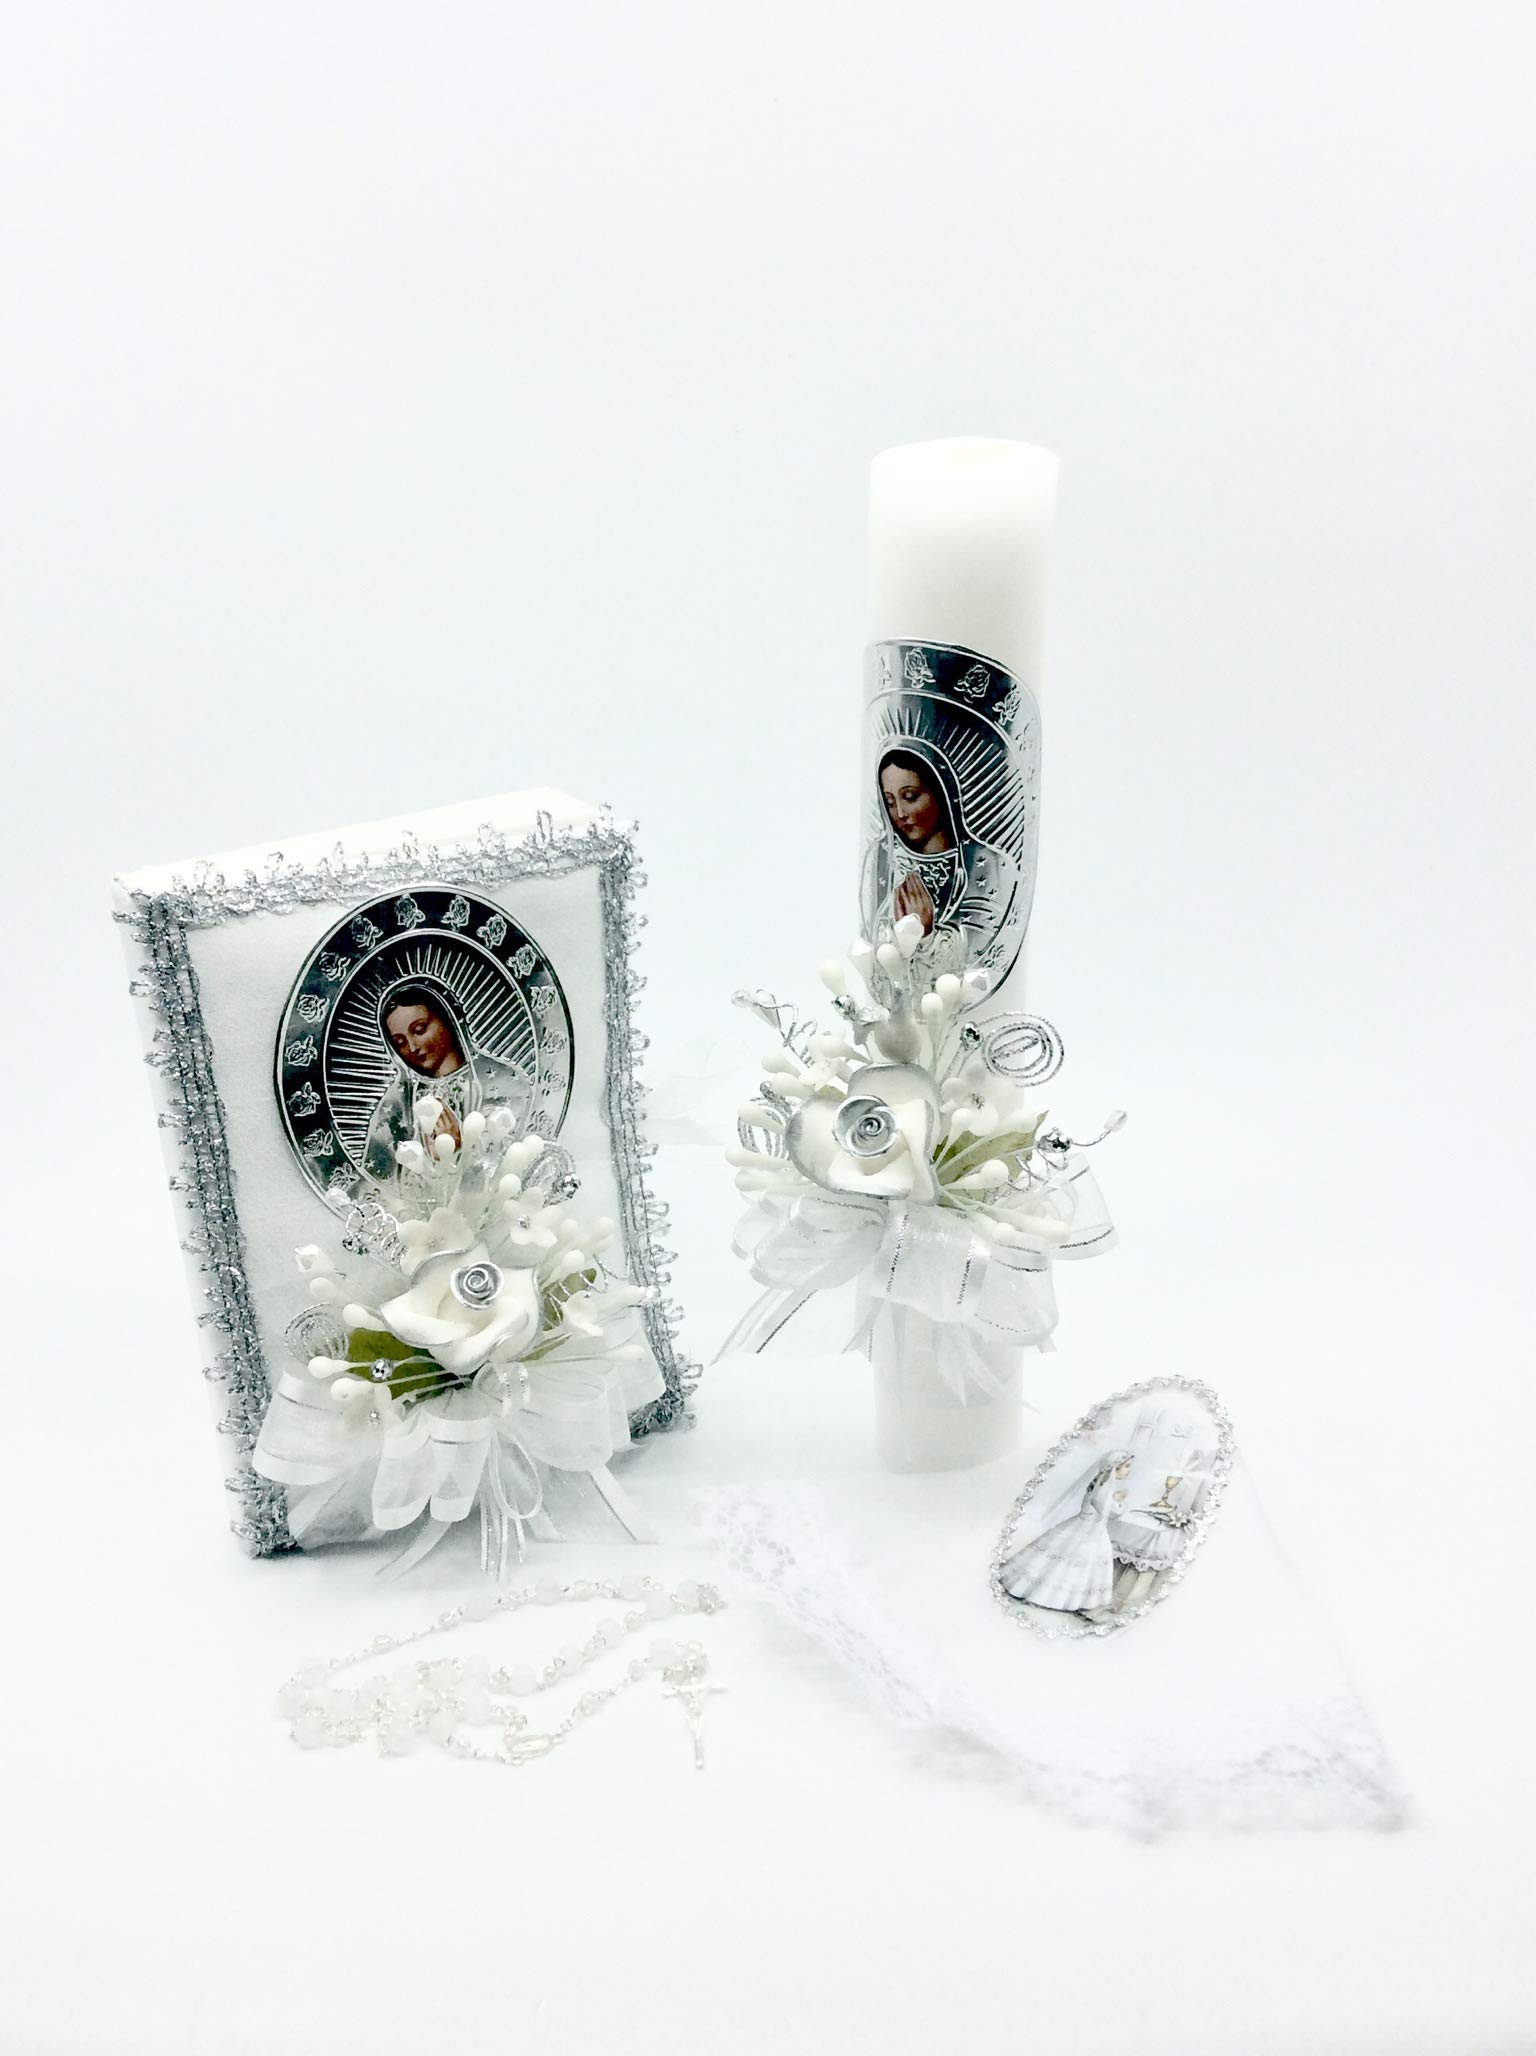 Casa Ixta First Communion Candle Lady of Guadalupe Image by Casa Ixta (Image #3)